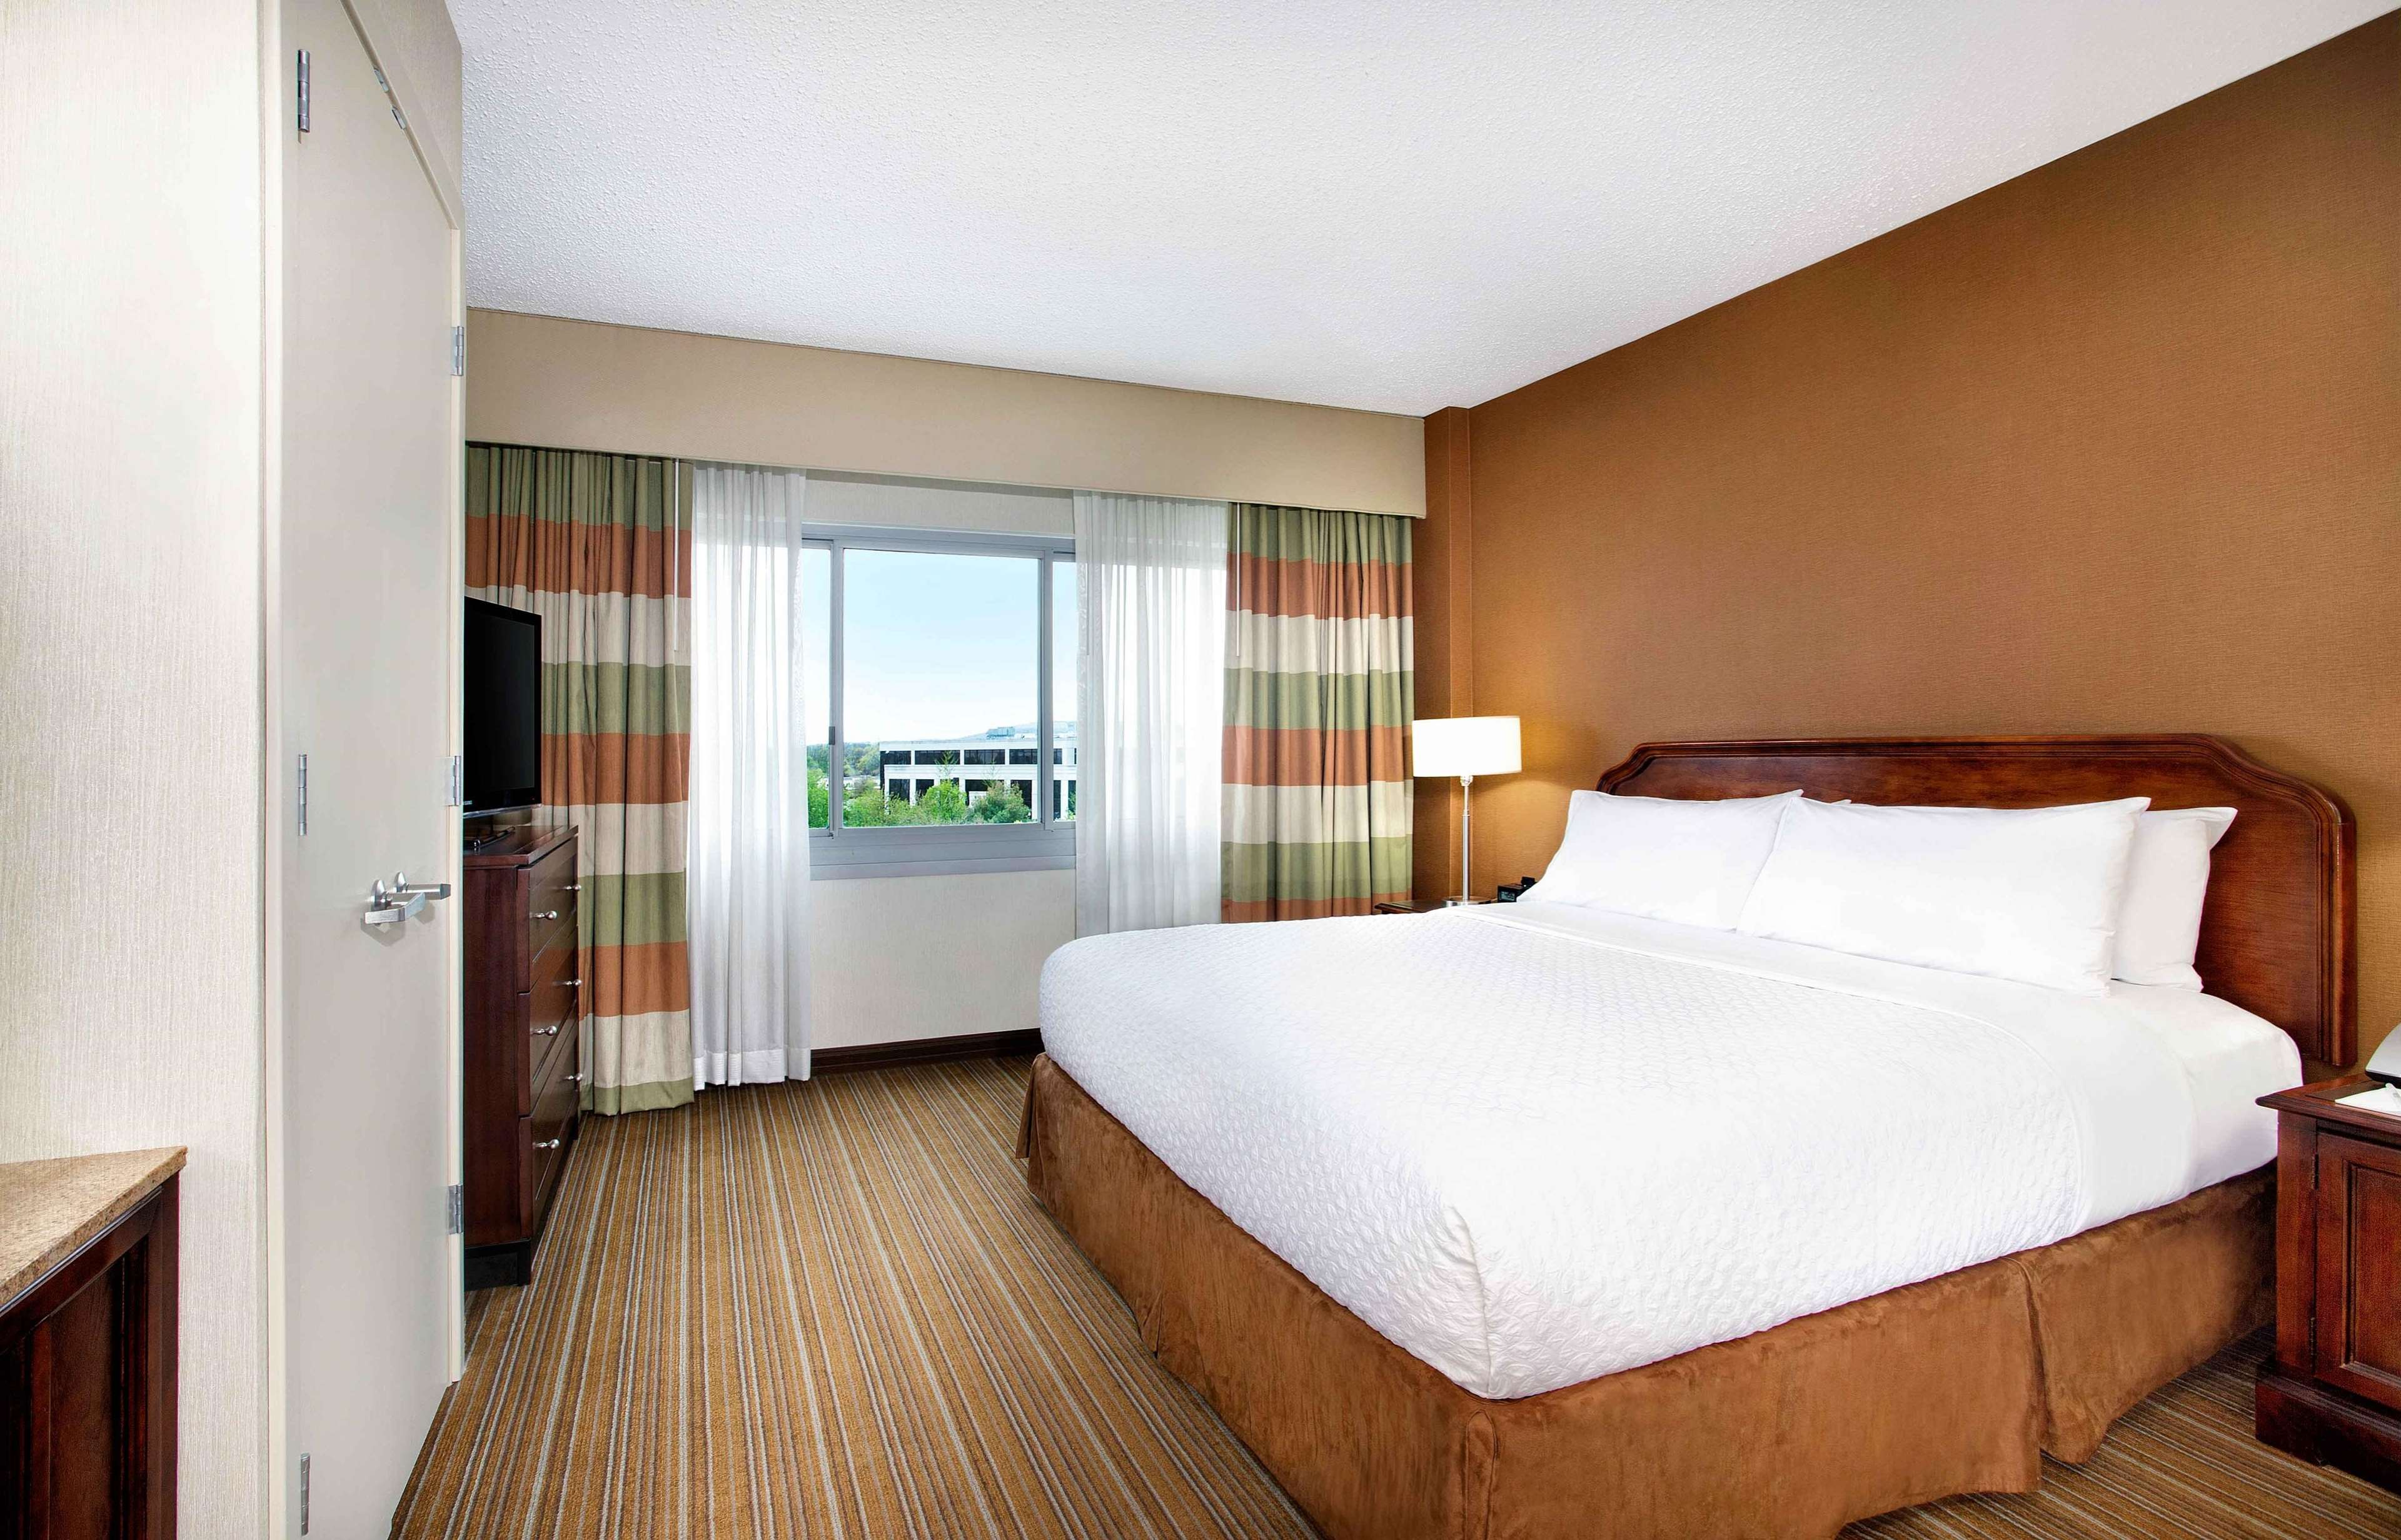 embassy suites by hilton parsippany parsippany new jersey. Black Bedroom Furniture Sets. Home Design Ideas